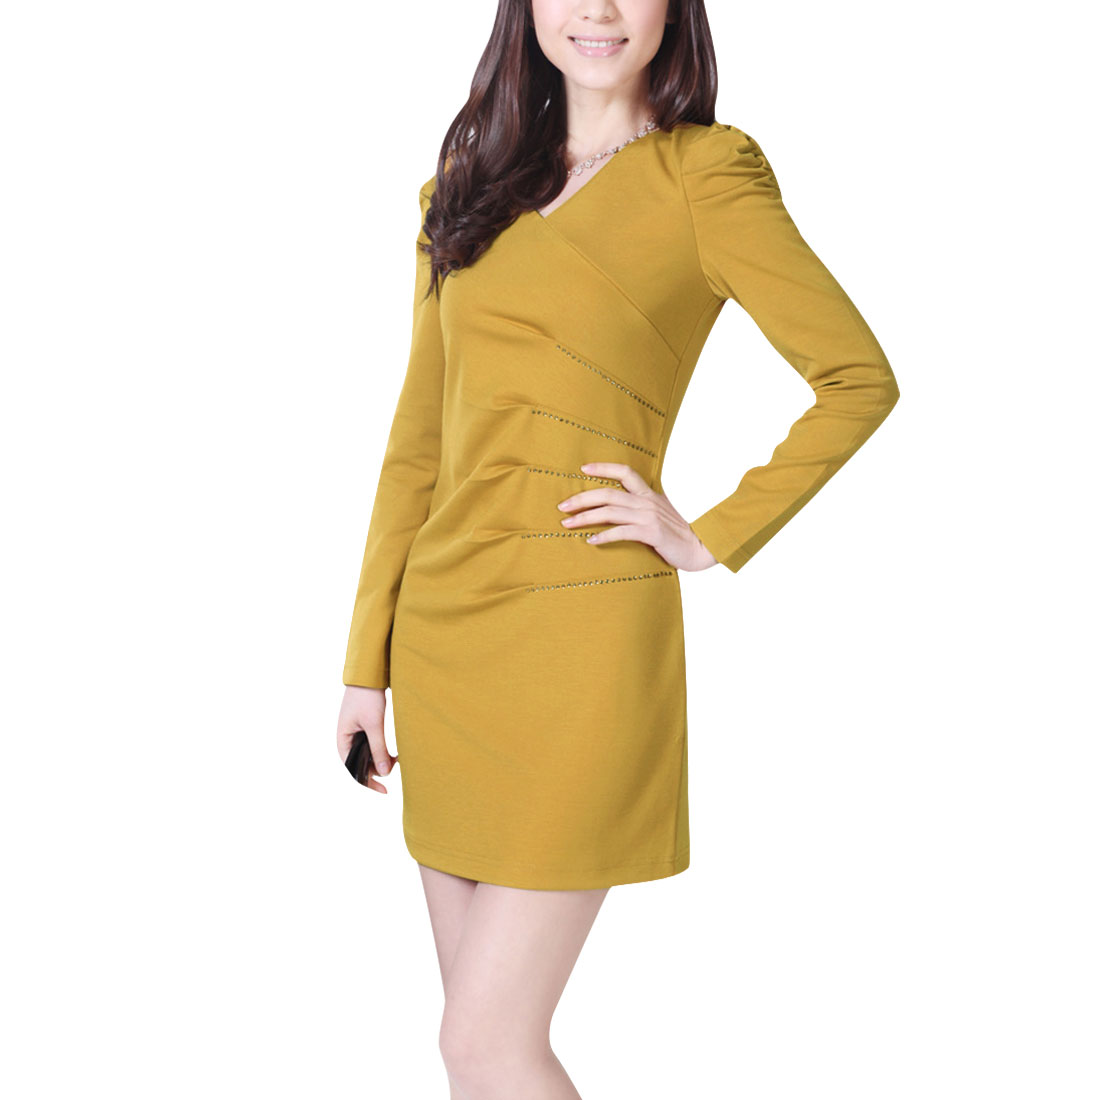 Women Medium Yellow V Neck Elegant Office Solid Color Dress XS